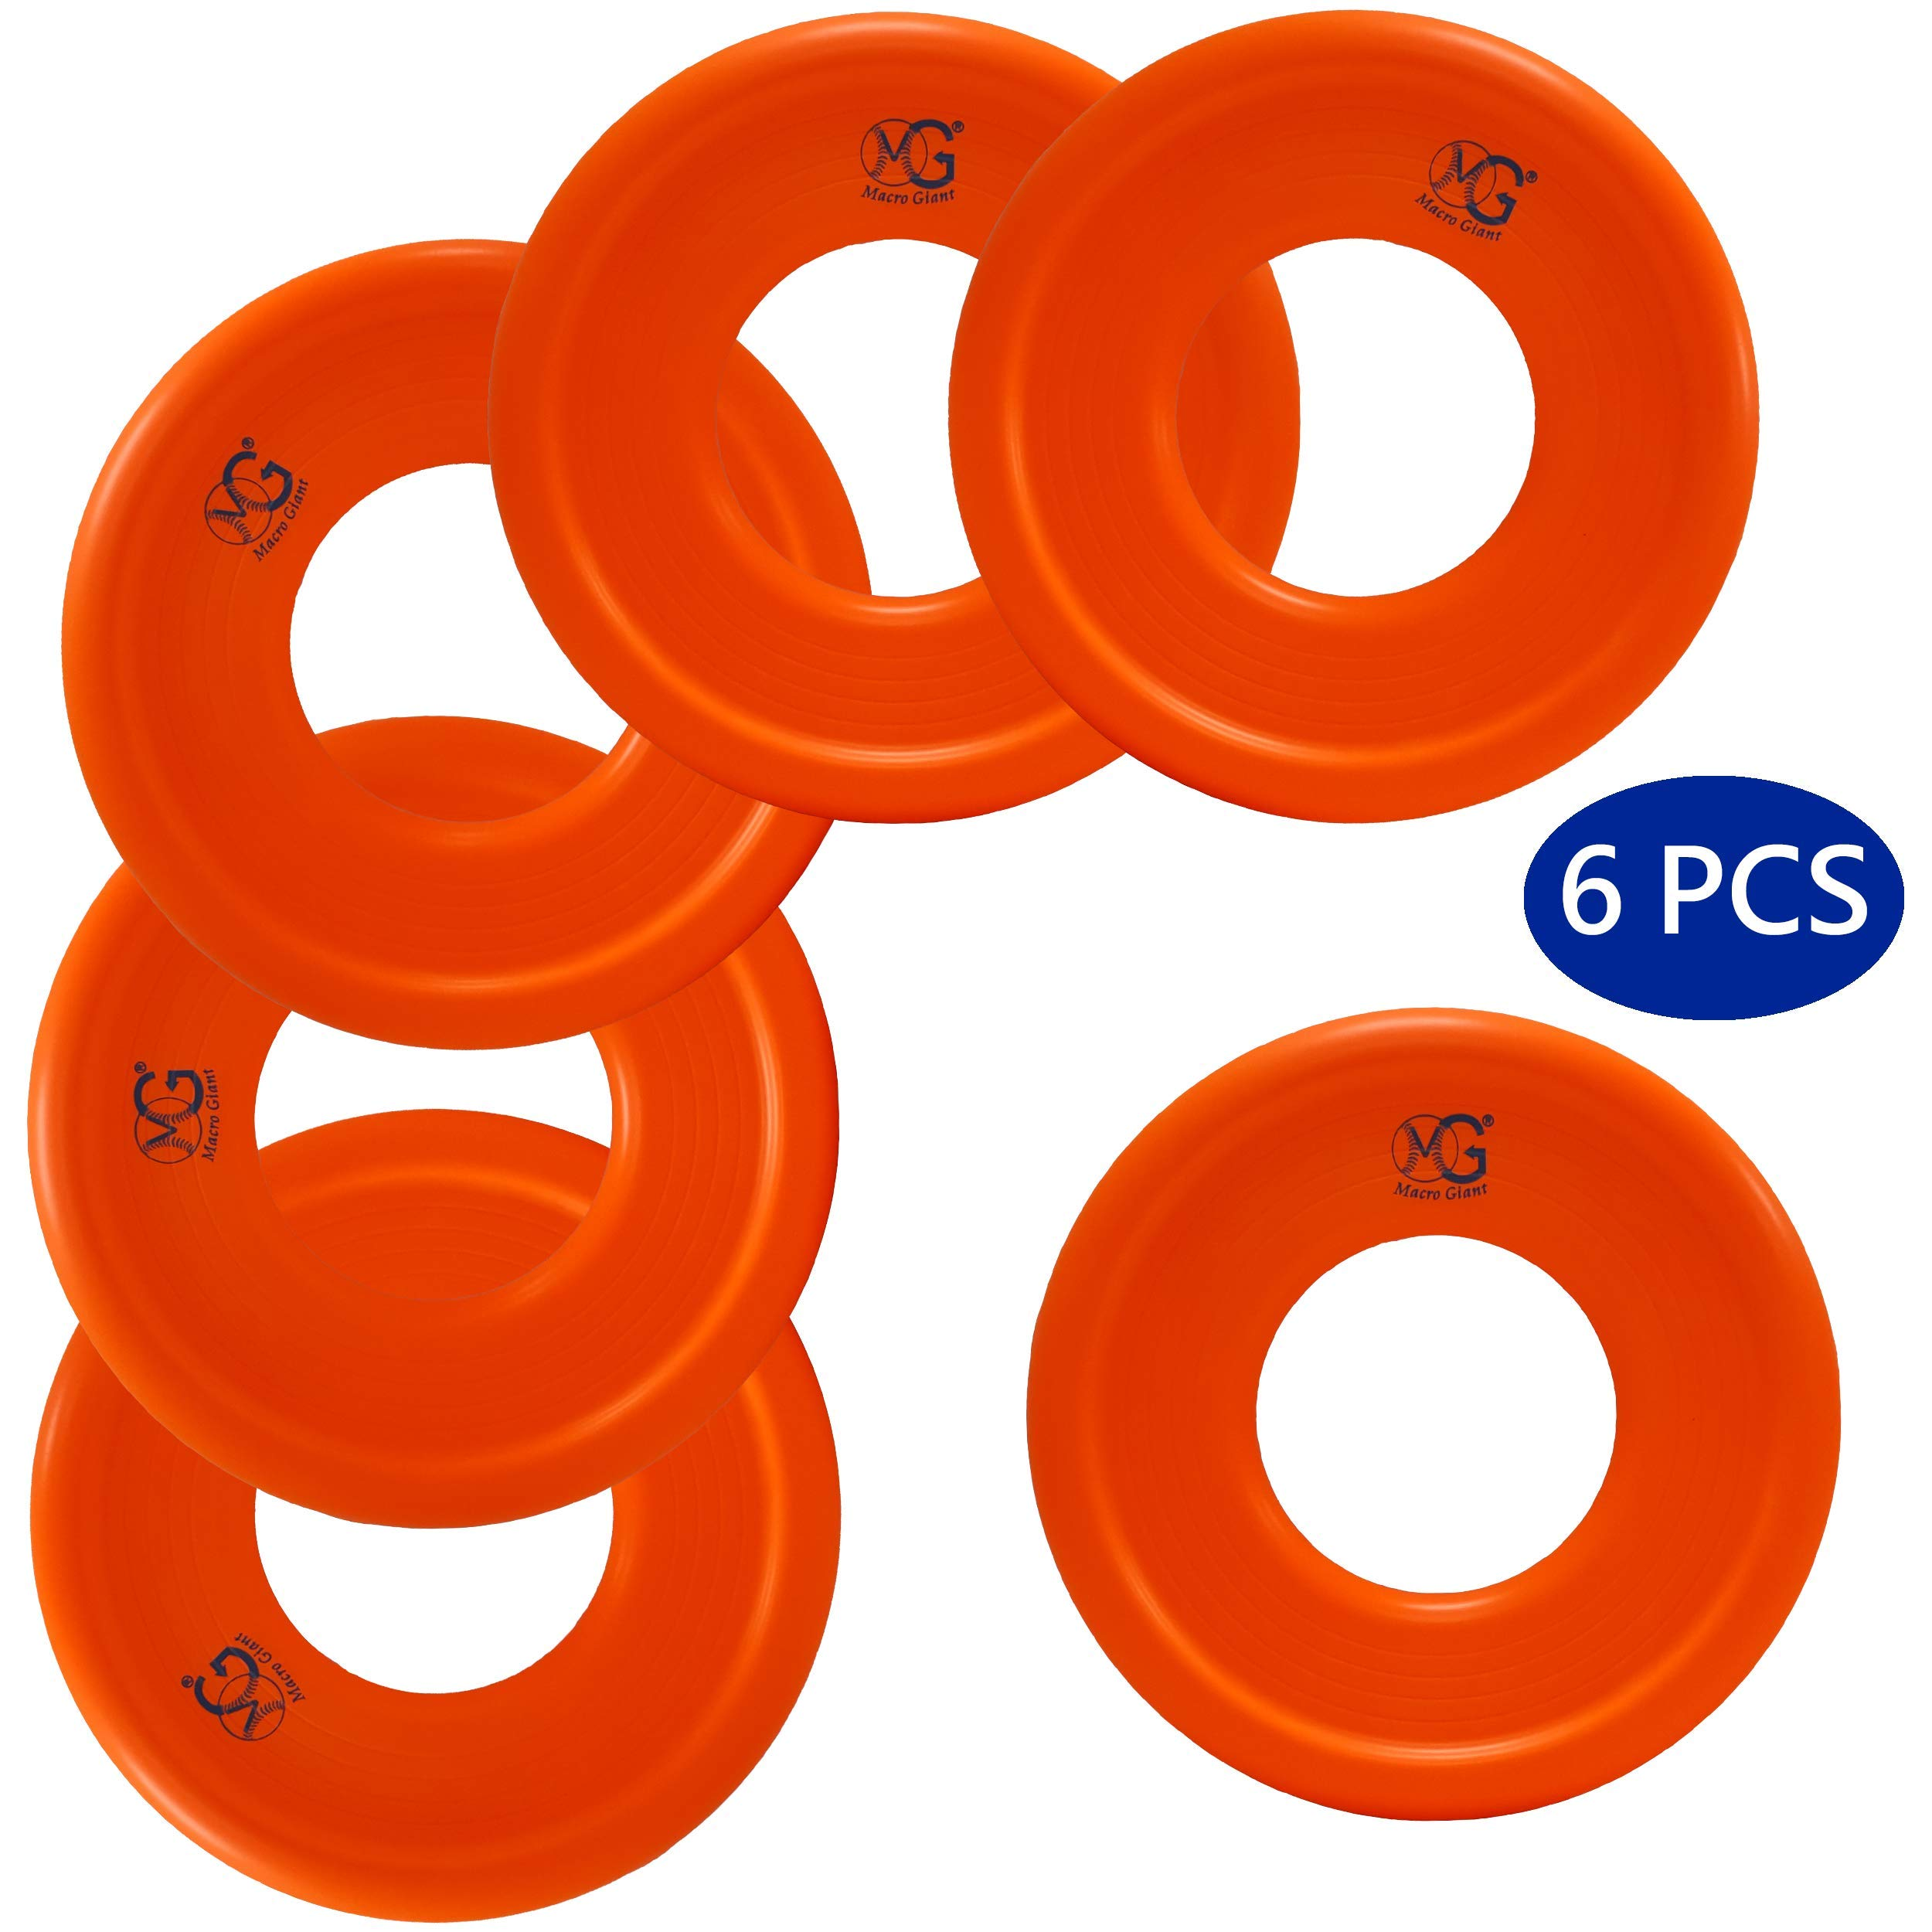 Macro Giant 9 Inch Soft Foam Frisbee Flying Discs, Set of 6, Neon Orange, Playground, Kid Sports Toy, Ring Toss Game, Parenting Activity, Outdoor Indoor, Camp Game